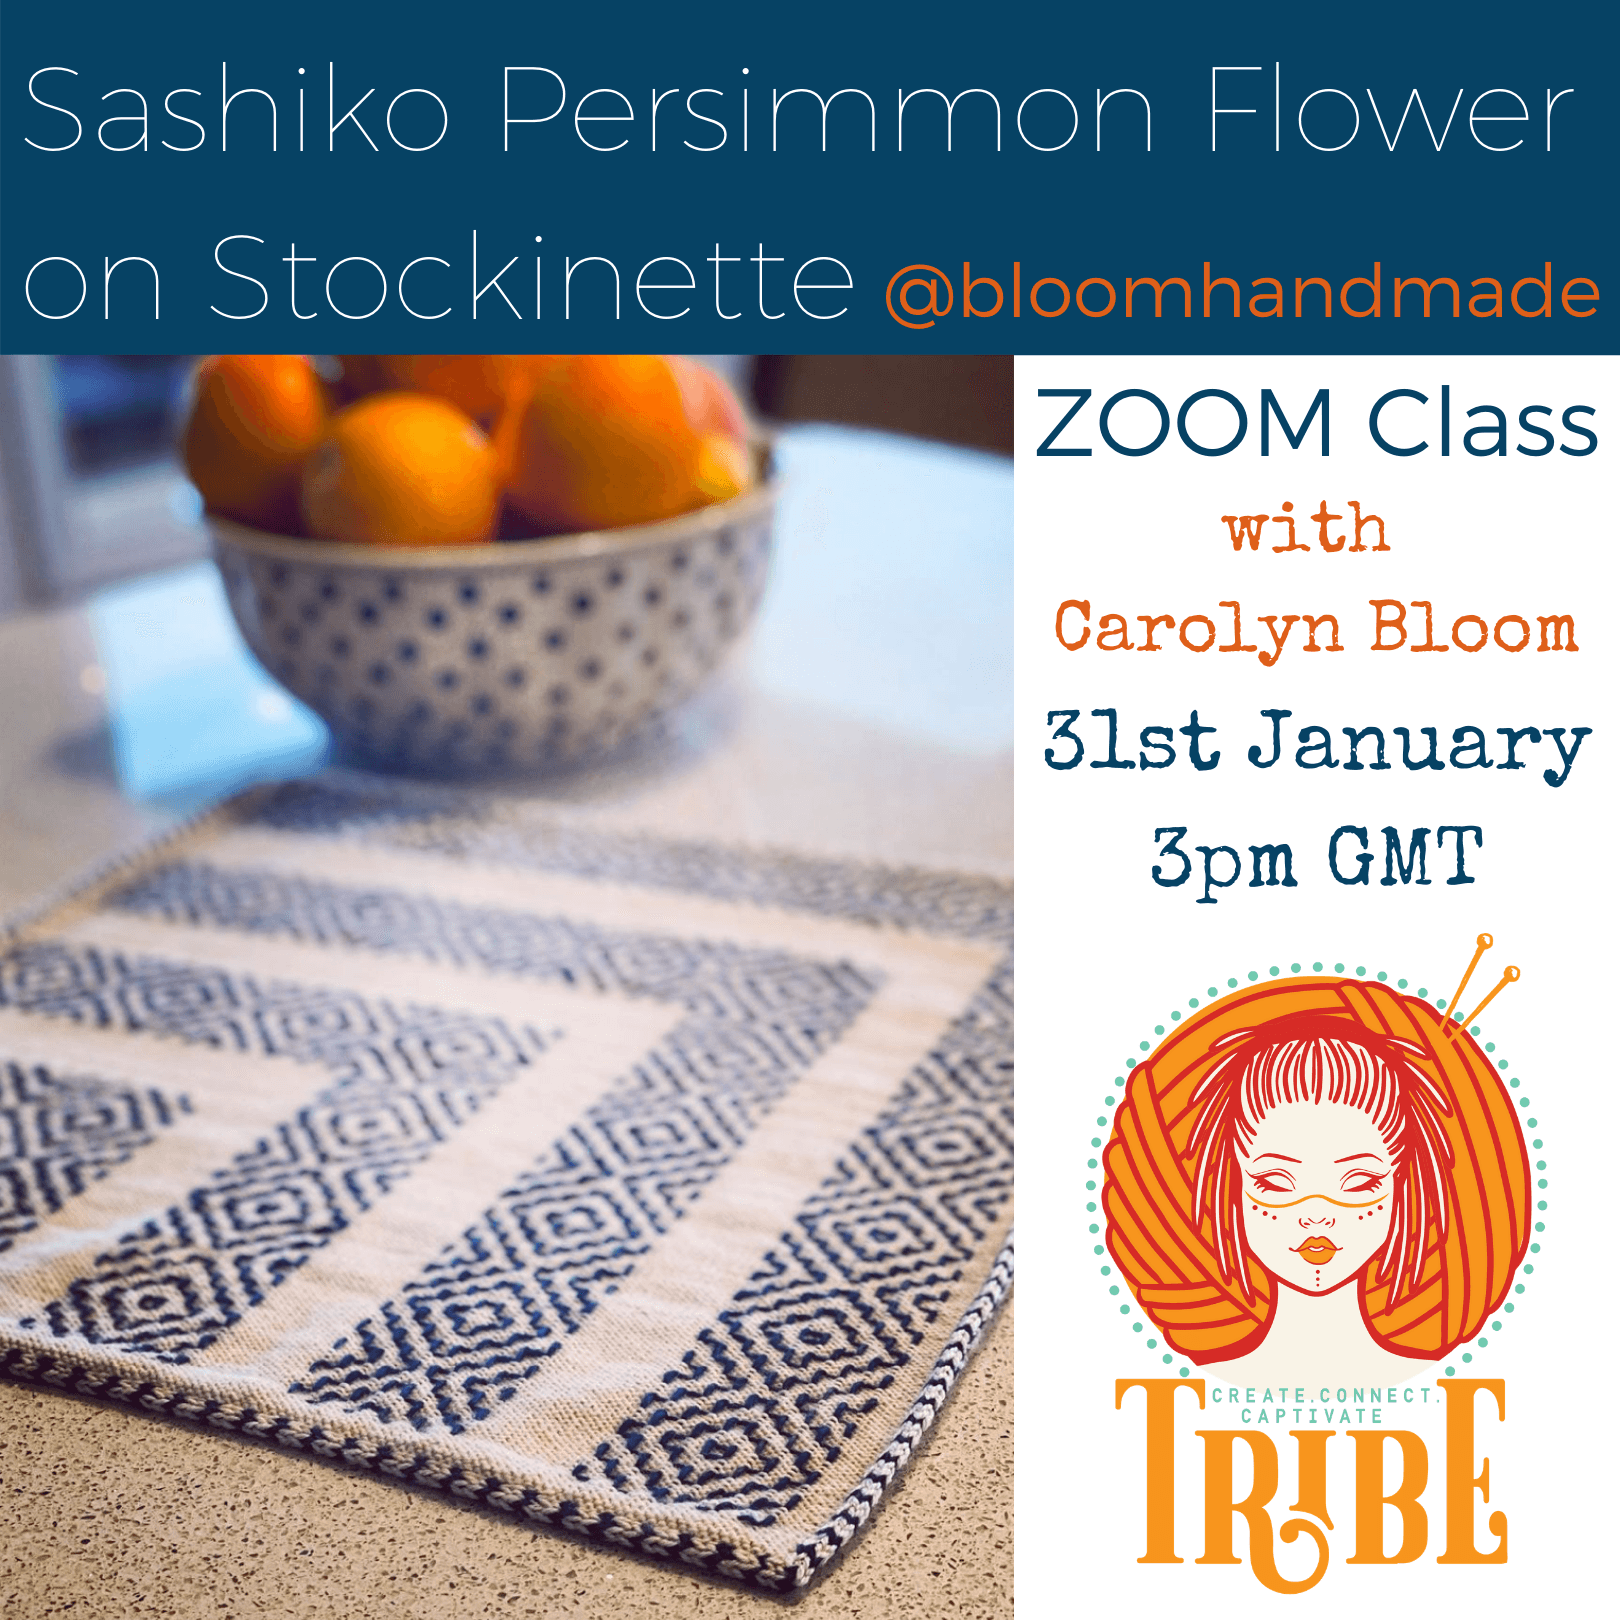 Sashiko Persimmon Flower on Stockinette with Carolyn Bloom tribeyarns Event